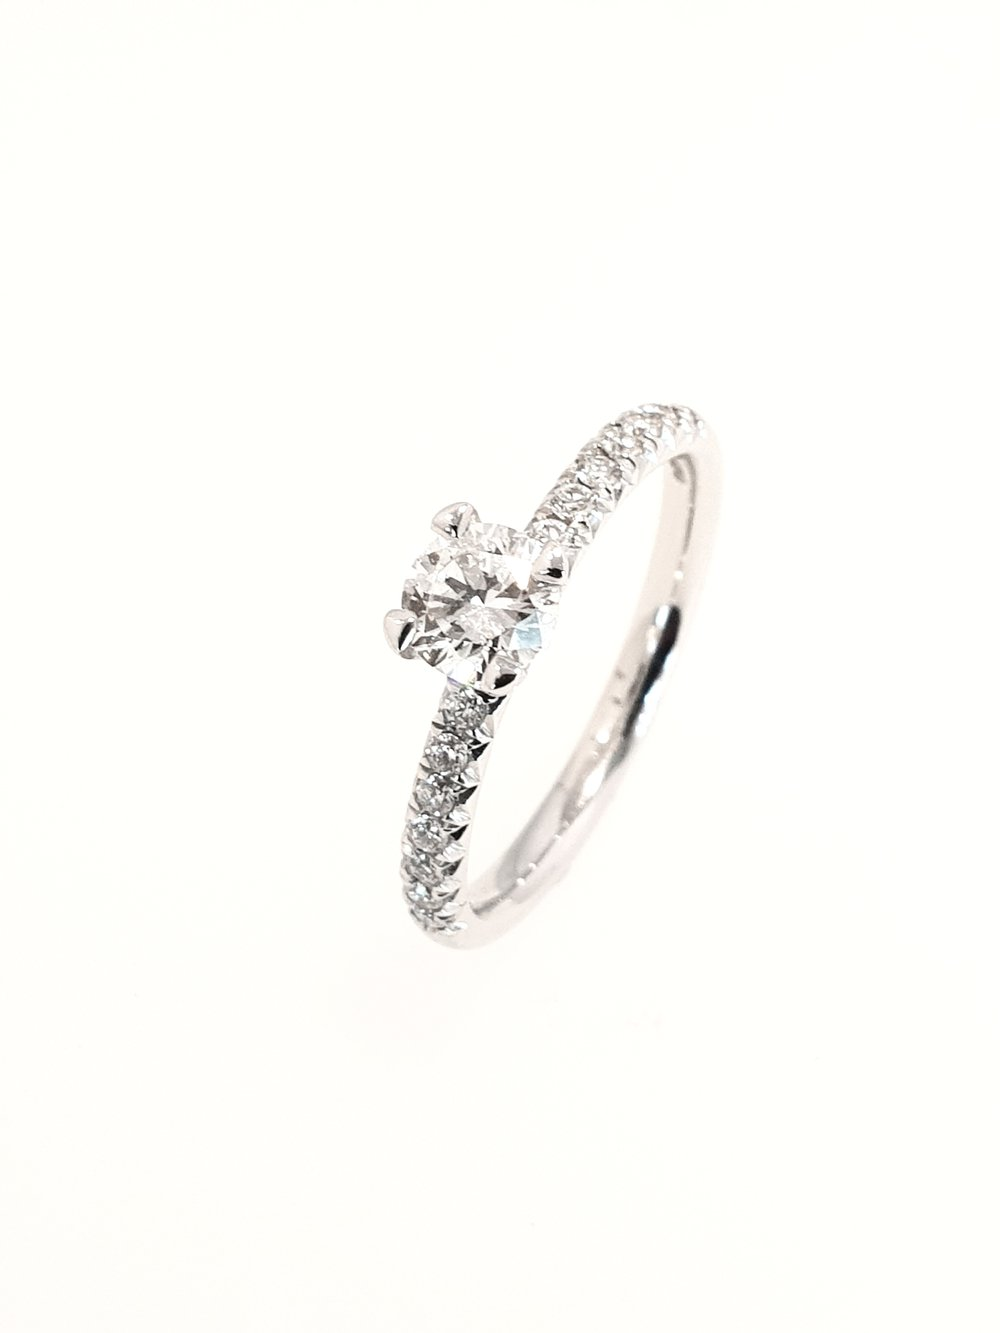 Platinum Diamond Ring, Tulip Set  .68ct, G, Si1  Stock Code: N8900  £3300